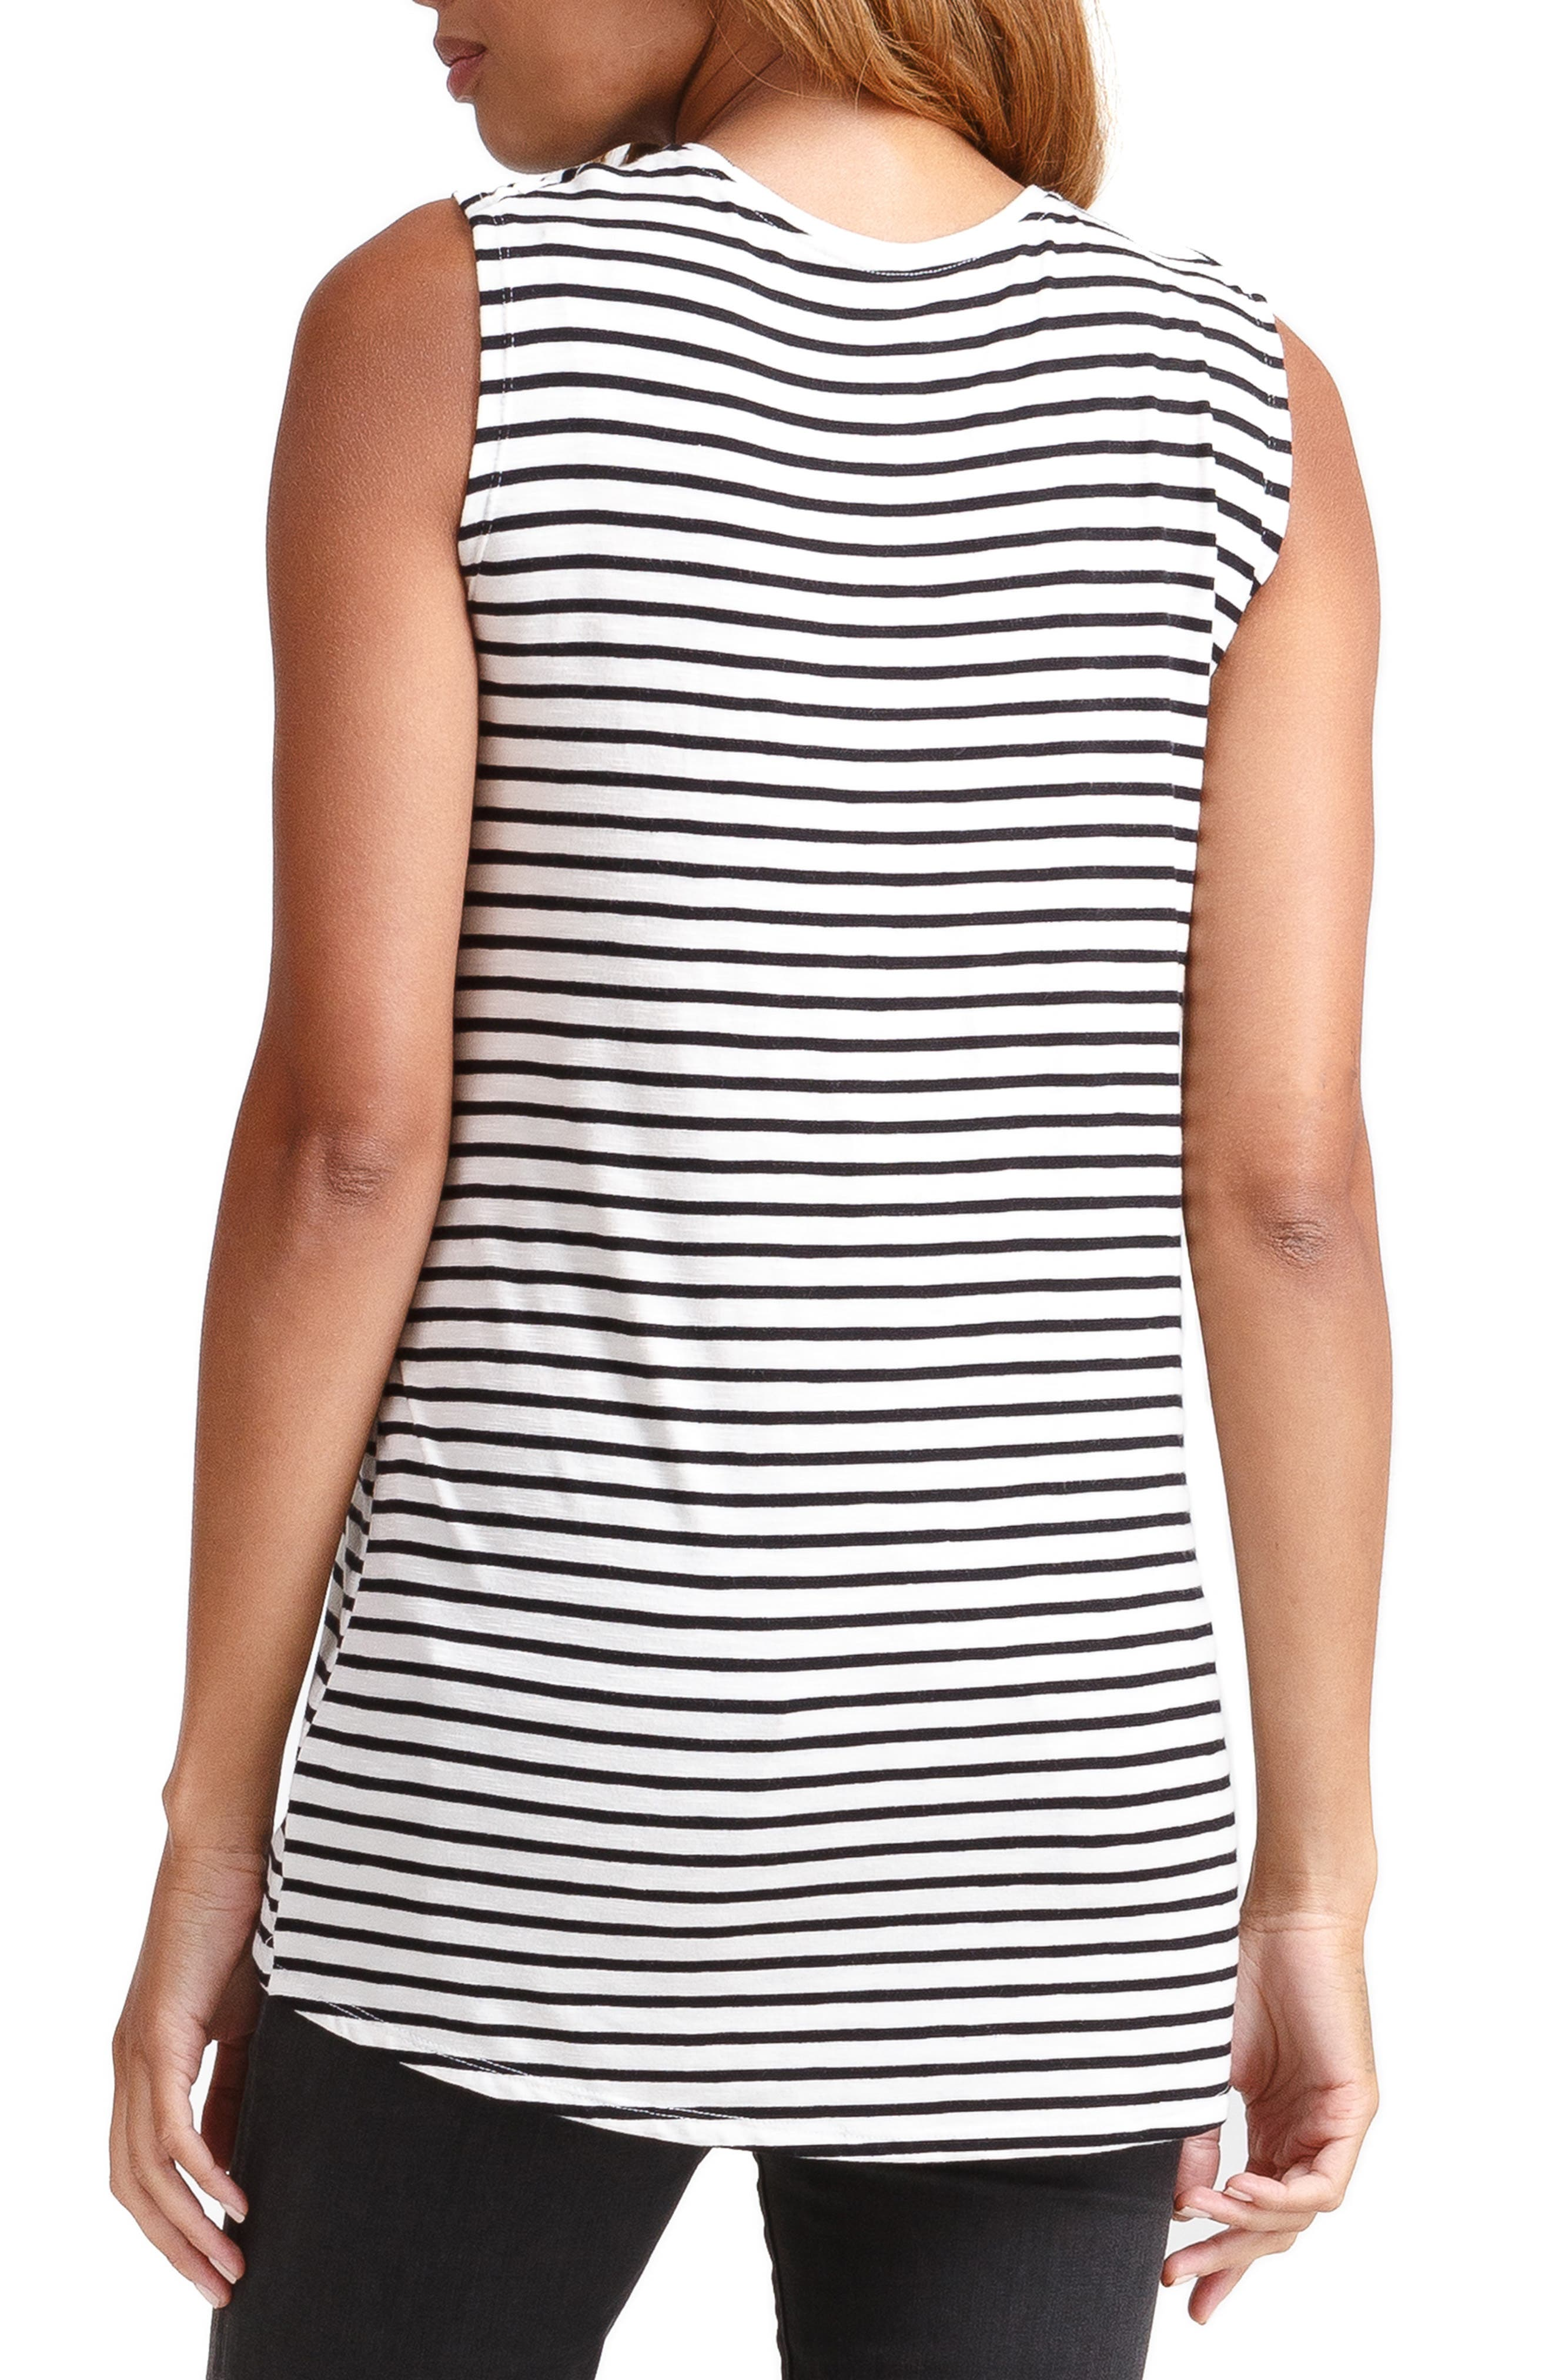 INGRID & ISABEL<SUP>®</SUP>, Cross Front Maternity/Nursing Top, Alternate thumbnail 2, color, BLACK/ WHITE STRIPE